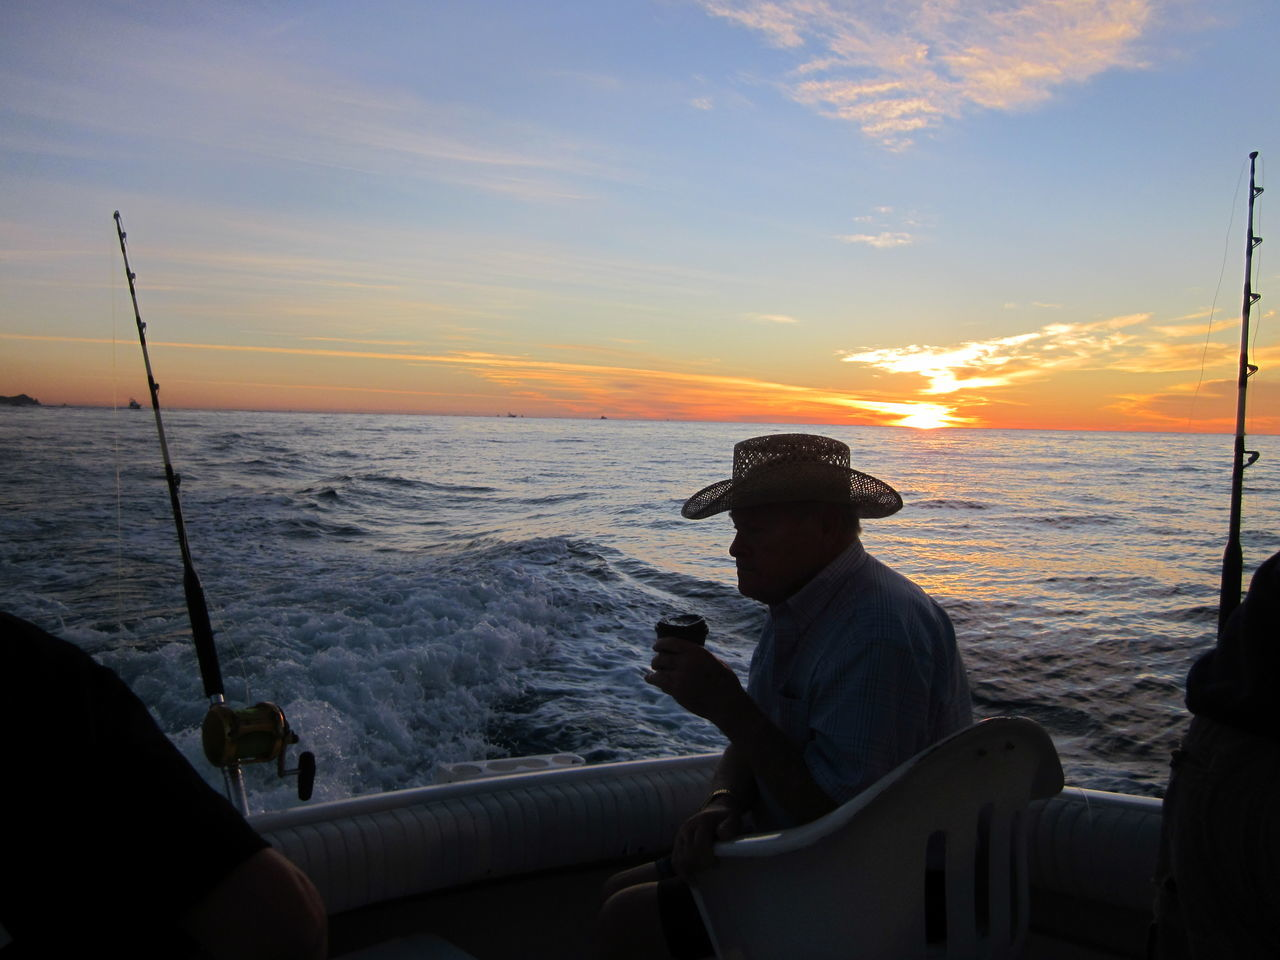 Beach Beauty In Nature Day Fishing Fishing Pole Horizon Over Water Leisure Activity Lifestyles Los Cabos Nature Old Man Outdoors Scenics Sea Silhouette Silhouette Sitting Sky Standing Sunset Water Wave Neighborhood Map